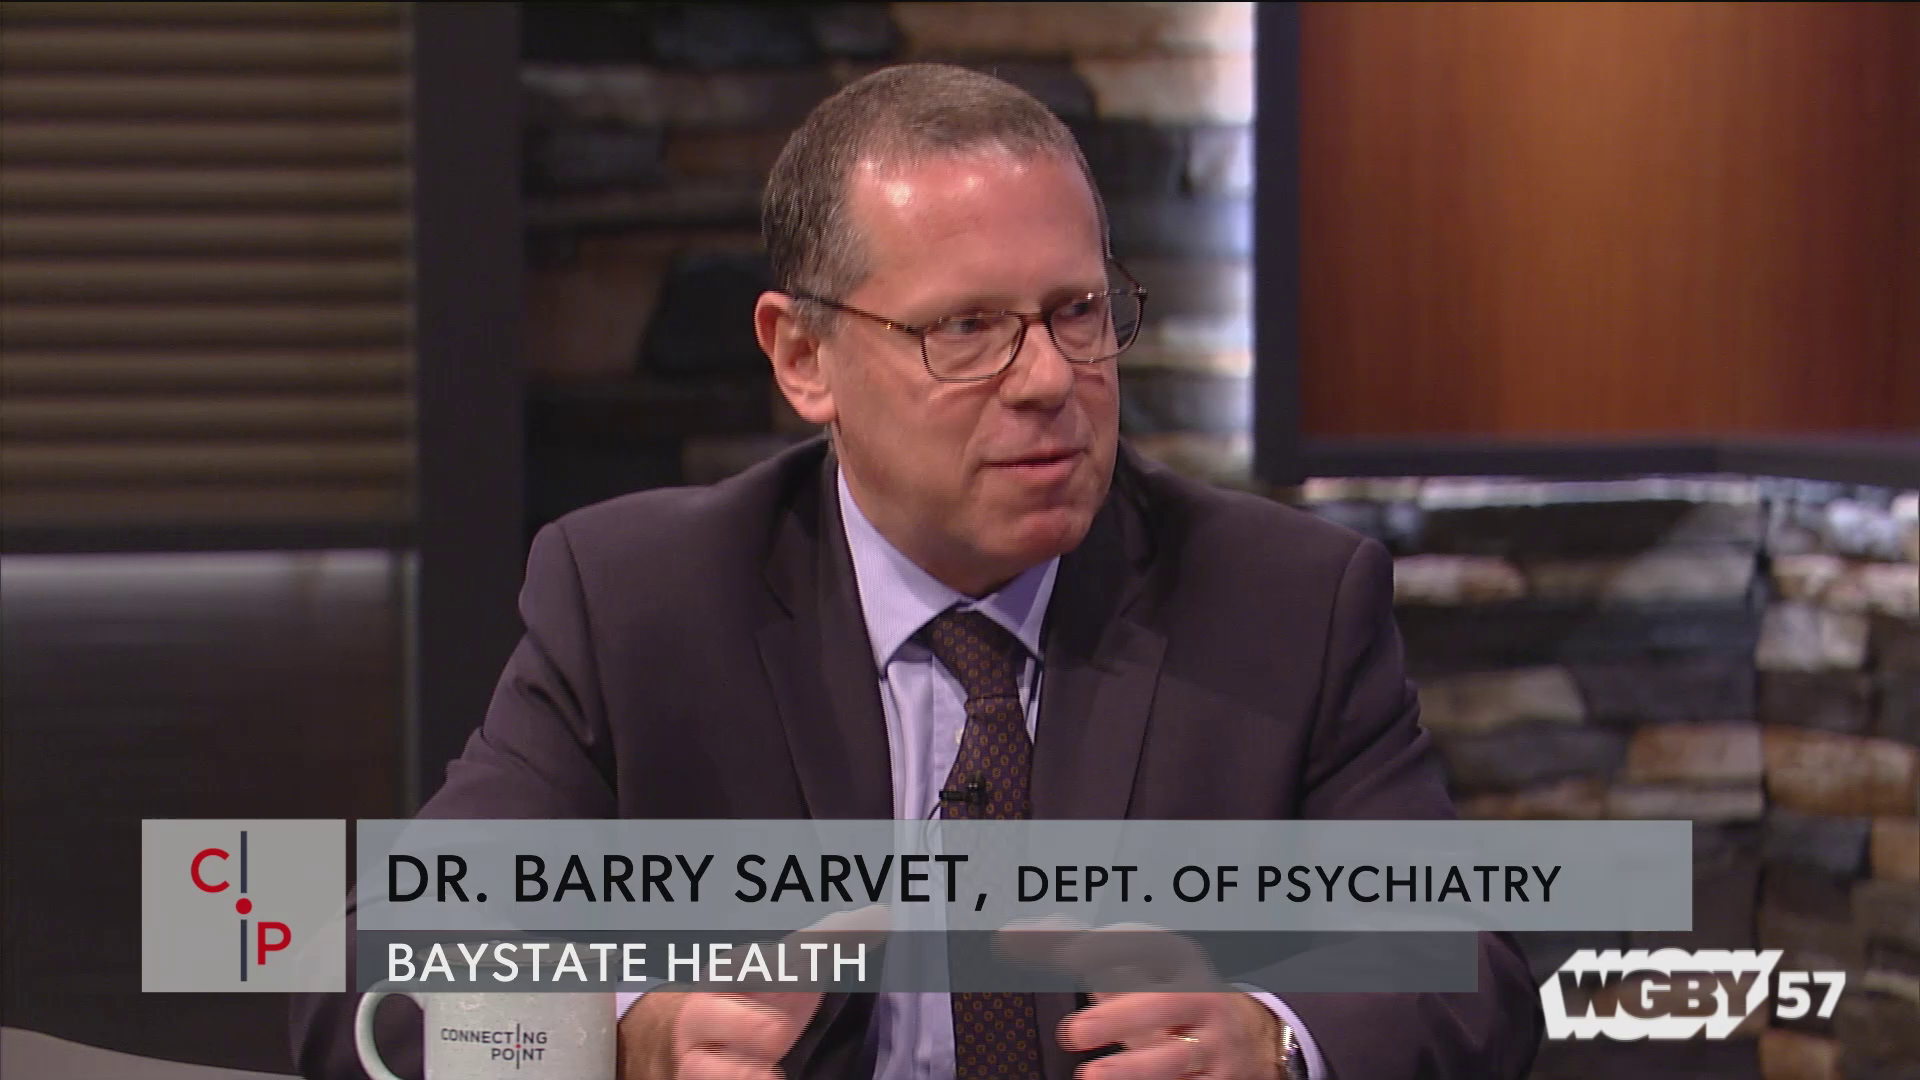 Carolee McGrath sat down with Dr. Barry Sarvet, chair of the Psychiatry Department at Baystate Health, to hear his take on mental health when it comes to preventing mass shootings.